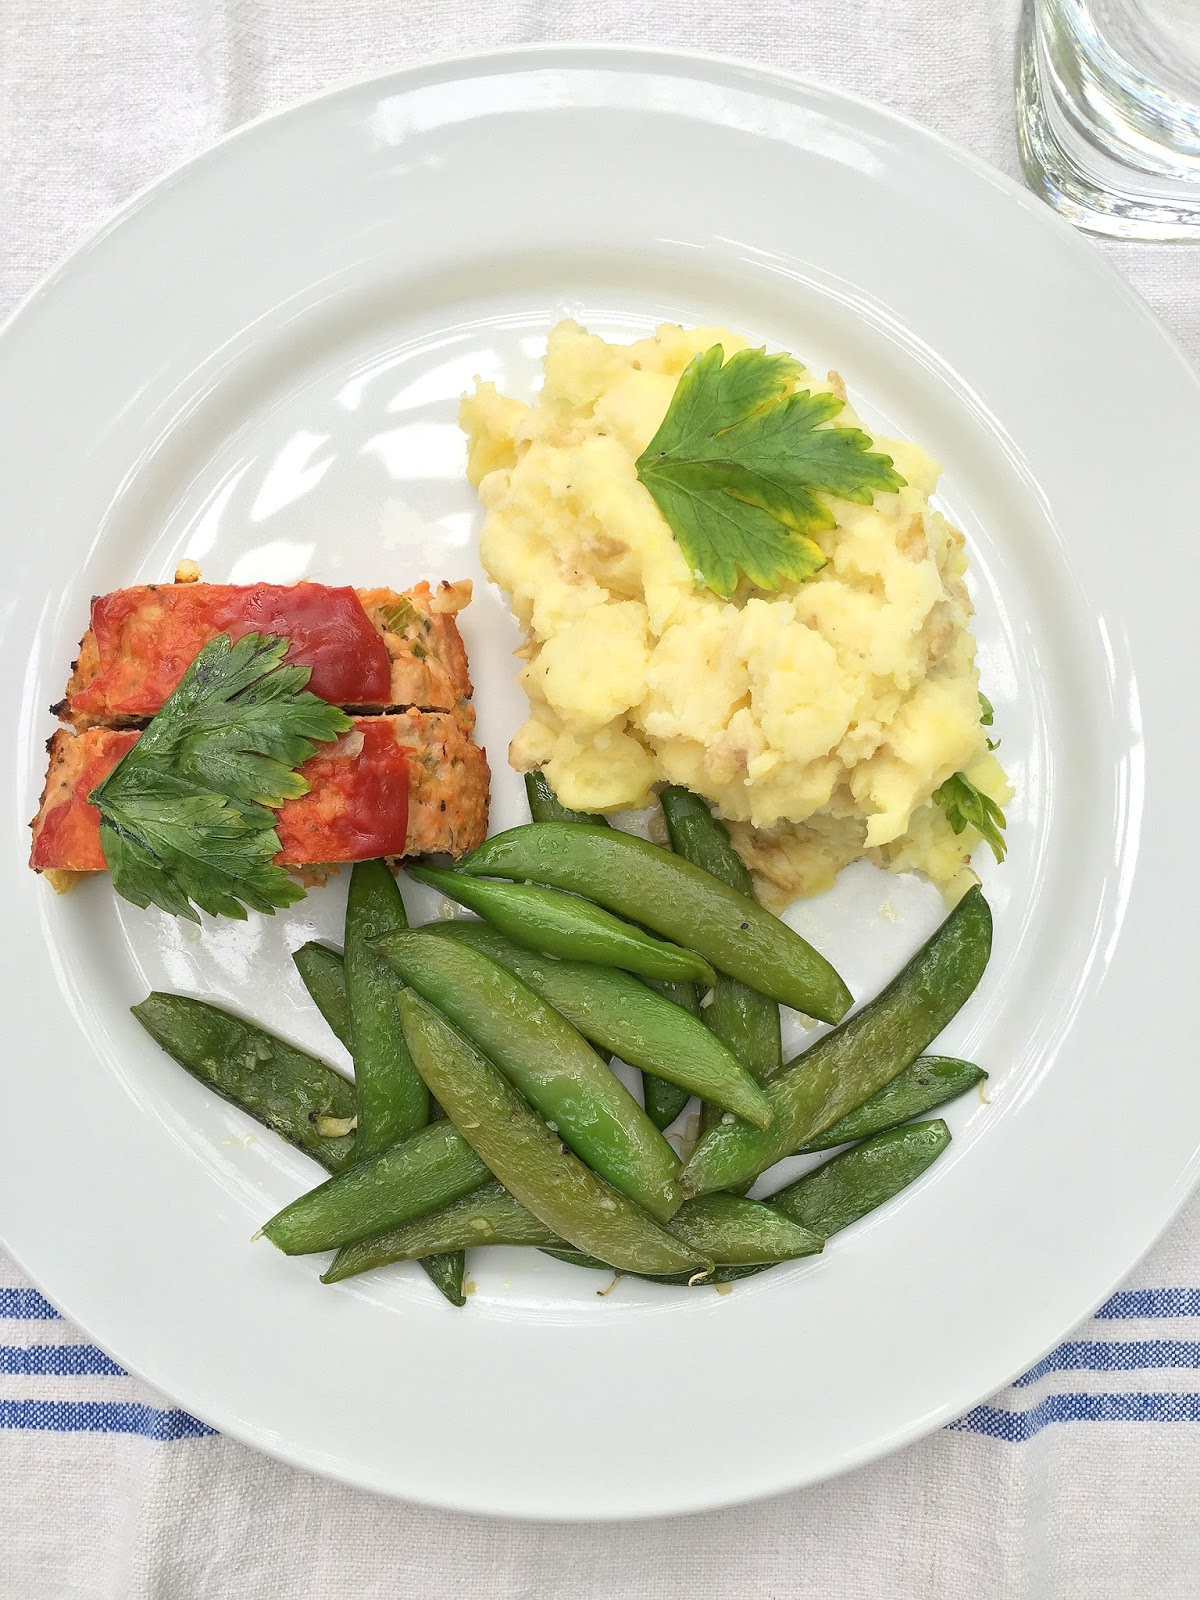 Blue apron questions - Blue Apron Offers Two Types Of Meal Plans The Two Person Or The Family Plan I Chose The Family Plan Which Was Plenty For The Three Of Us With Leftovers